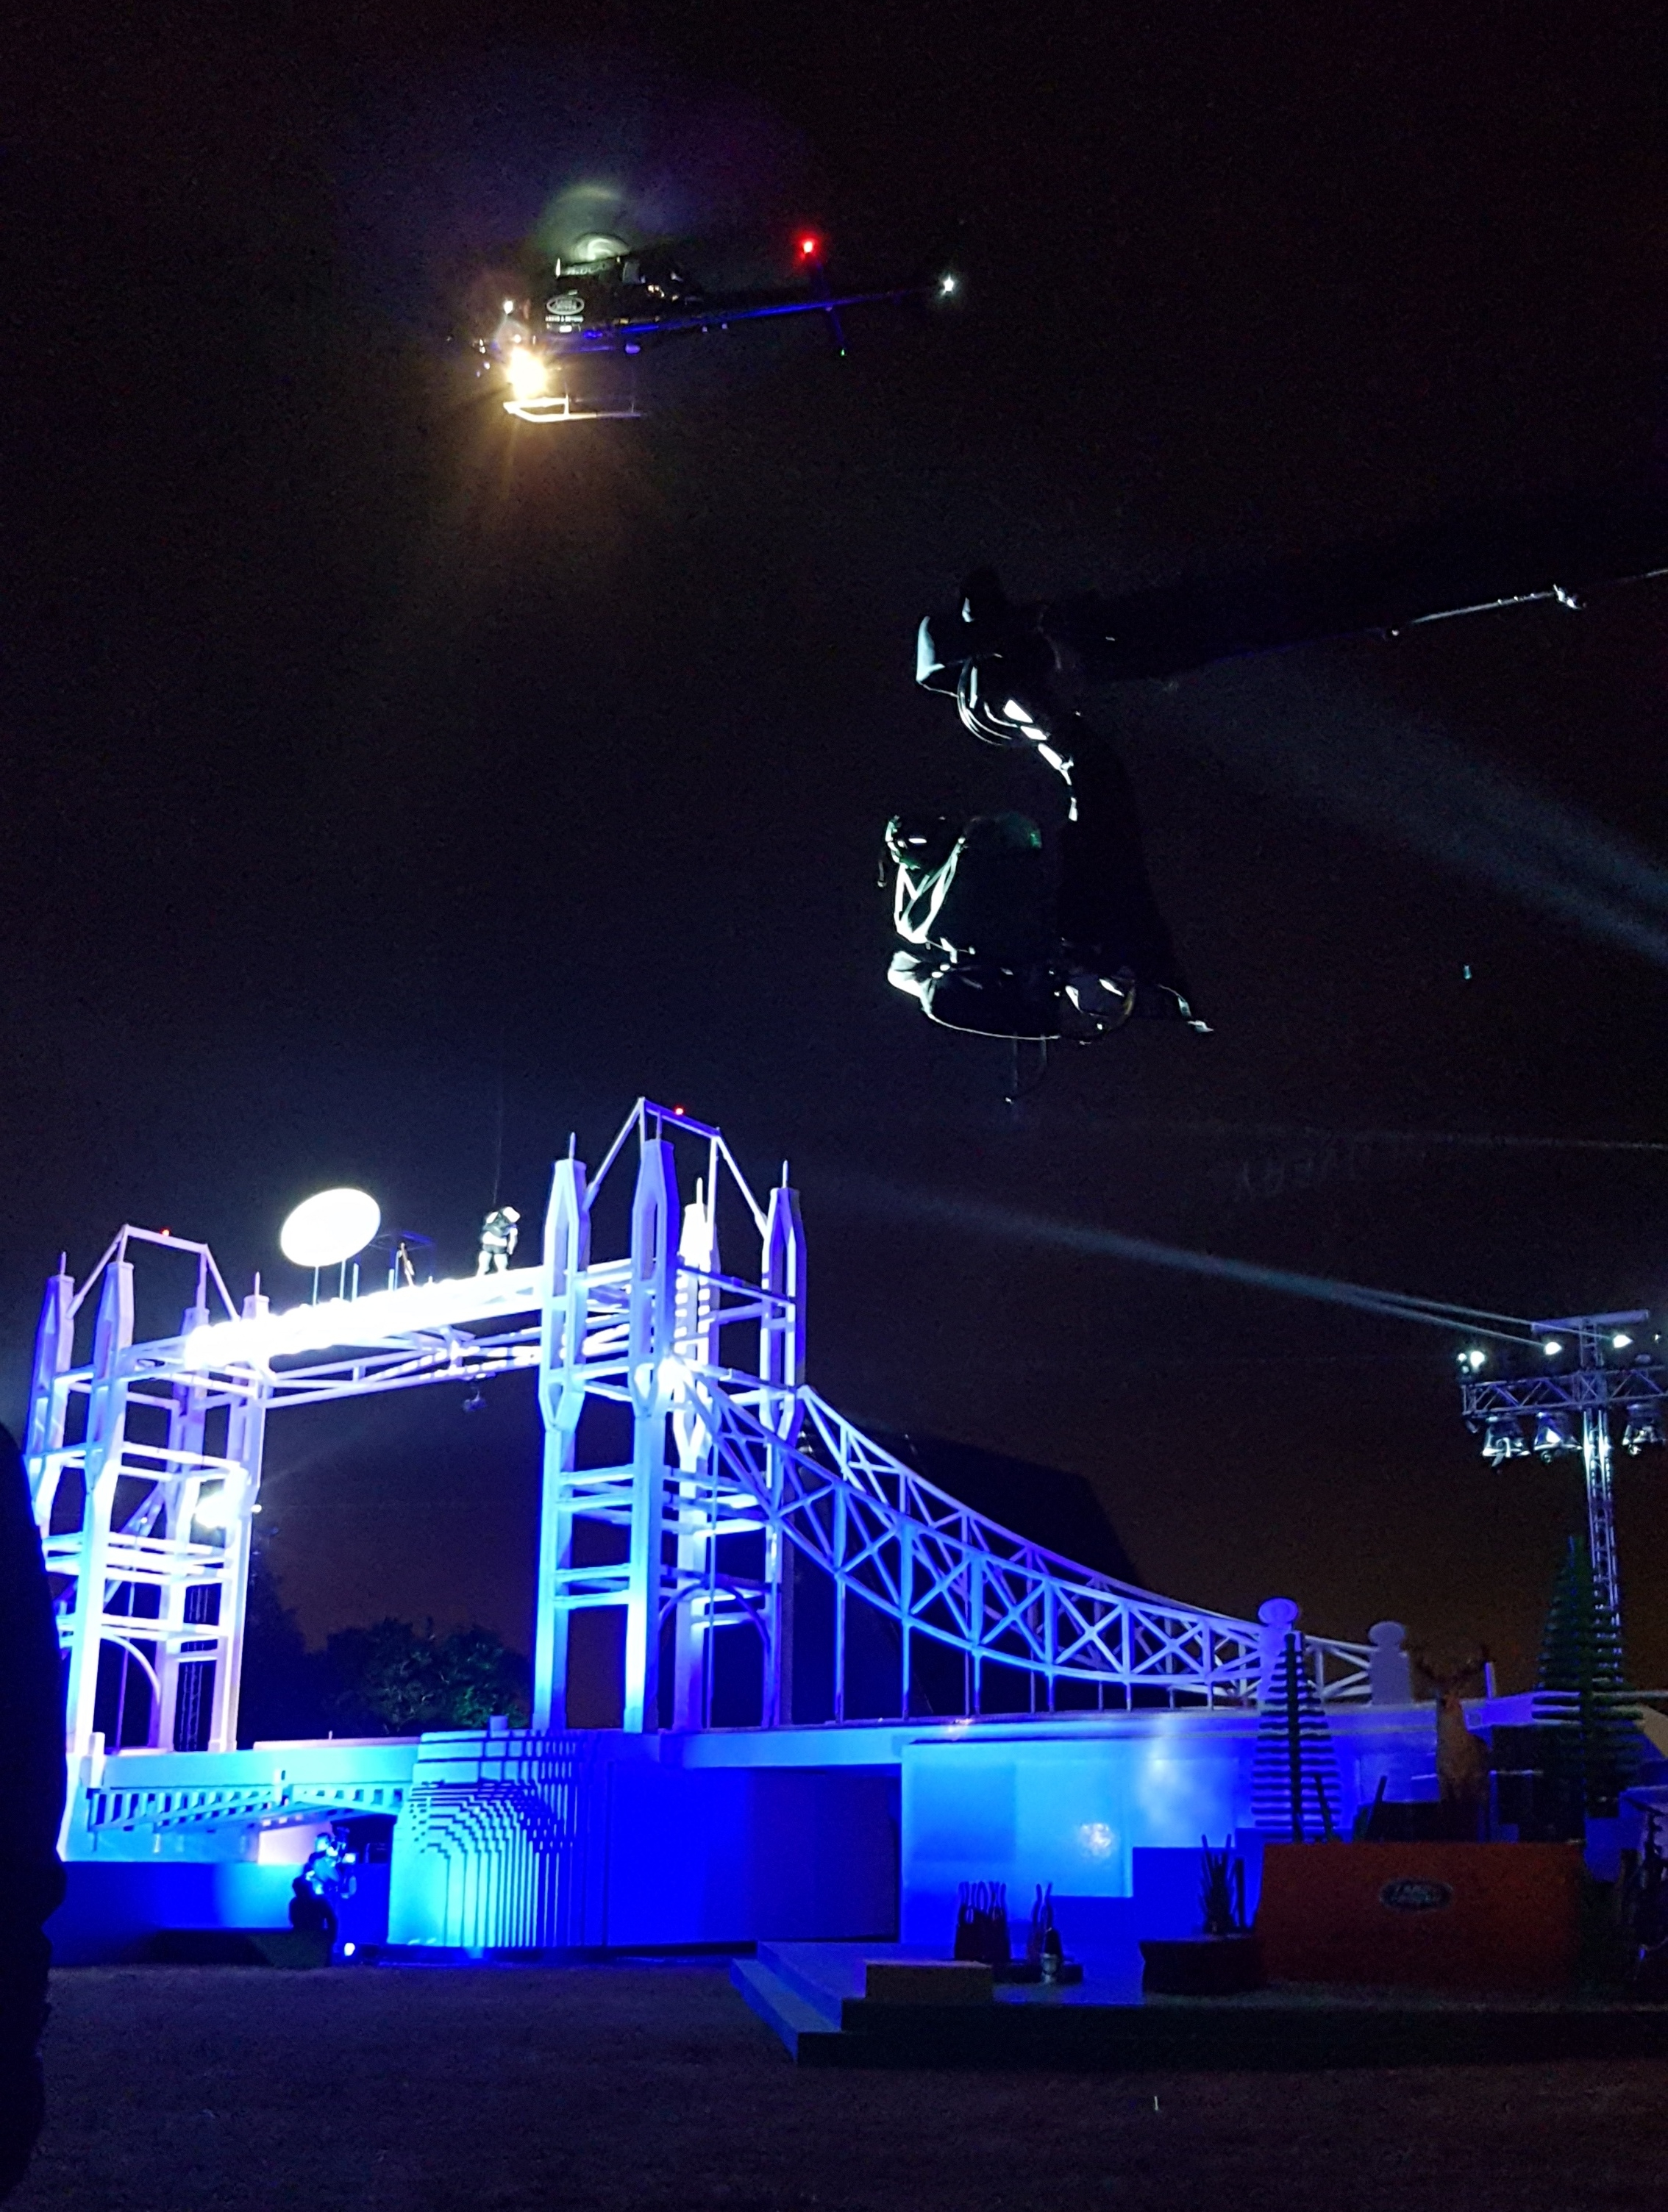 Commercial Stunt Filming at Launch Event